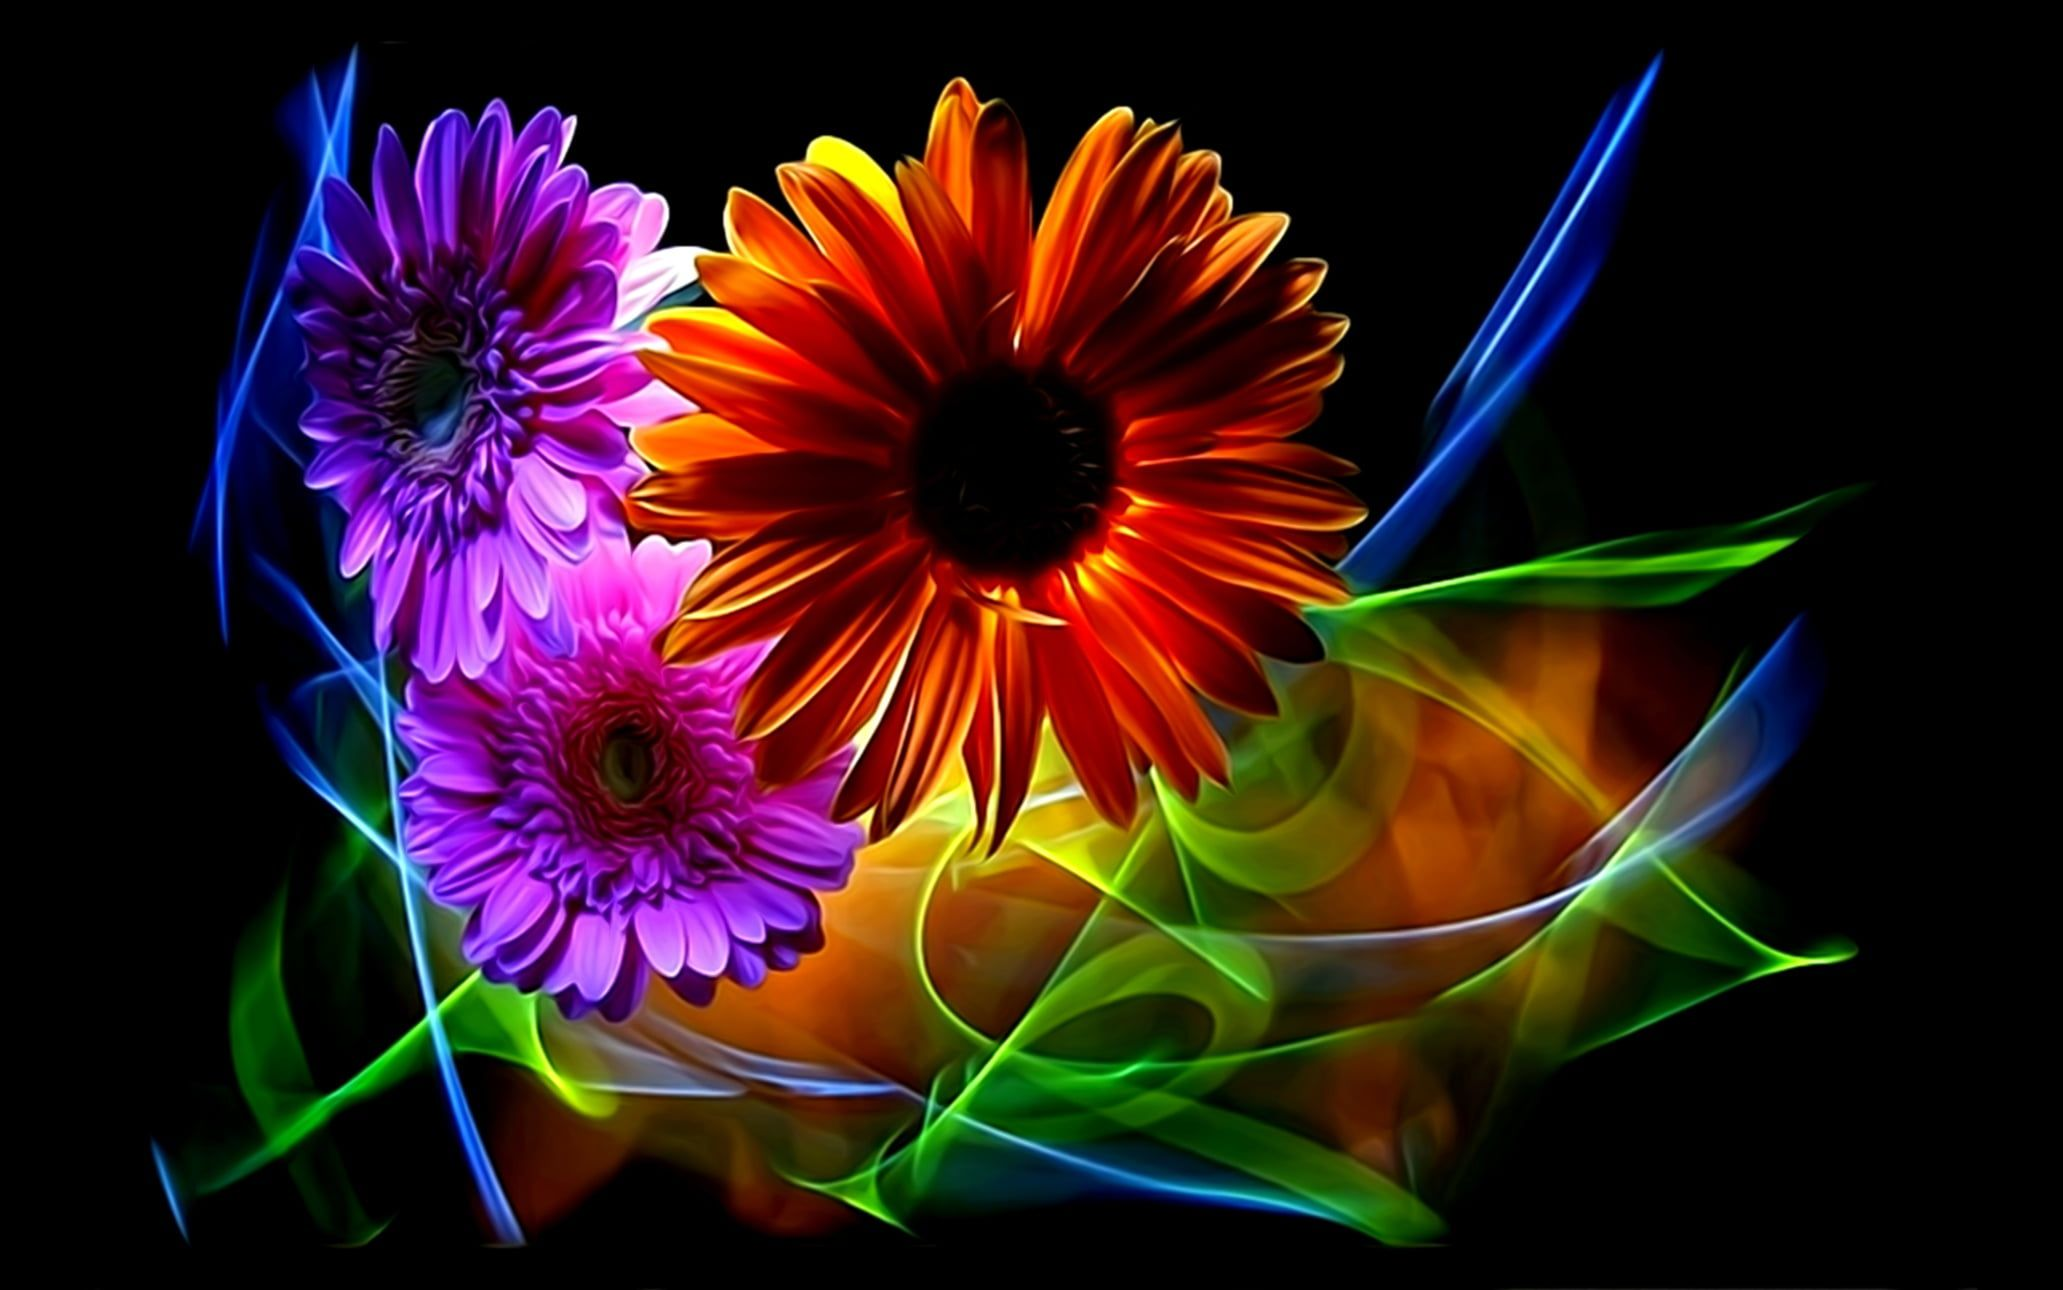 Flowers Abstraction Rendering Petals Black Background Gerbera Picture Neon Light Floral Fantasy Lines Of Light Neon Flowers Neon Flower Flower Wallpaper Coolest neon flower wallpaper